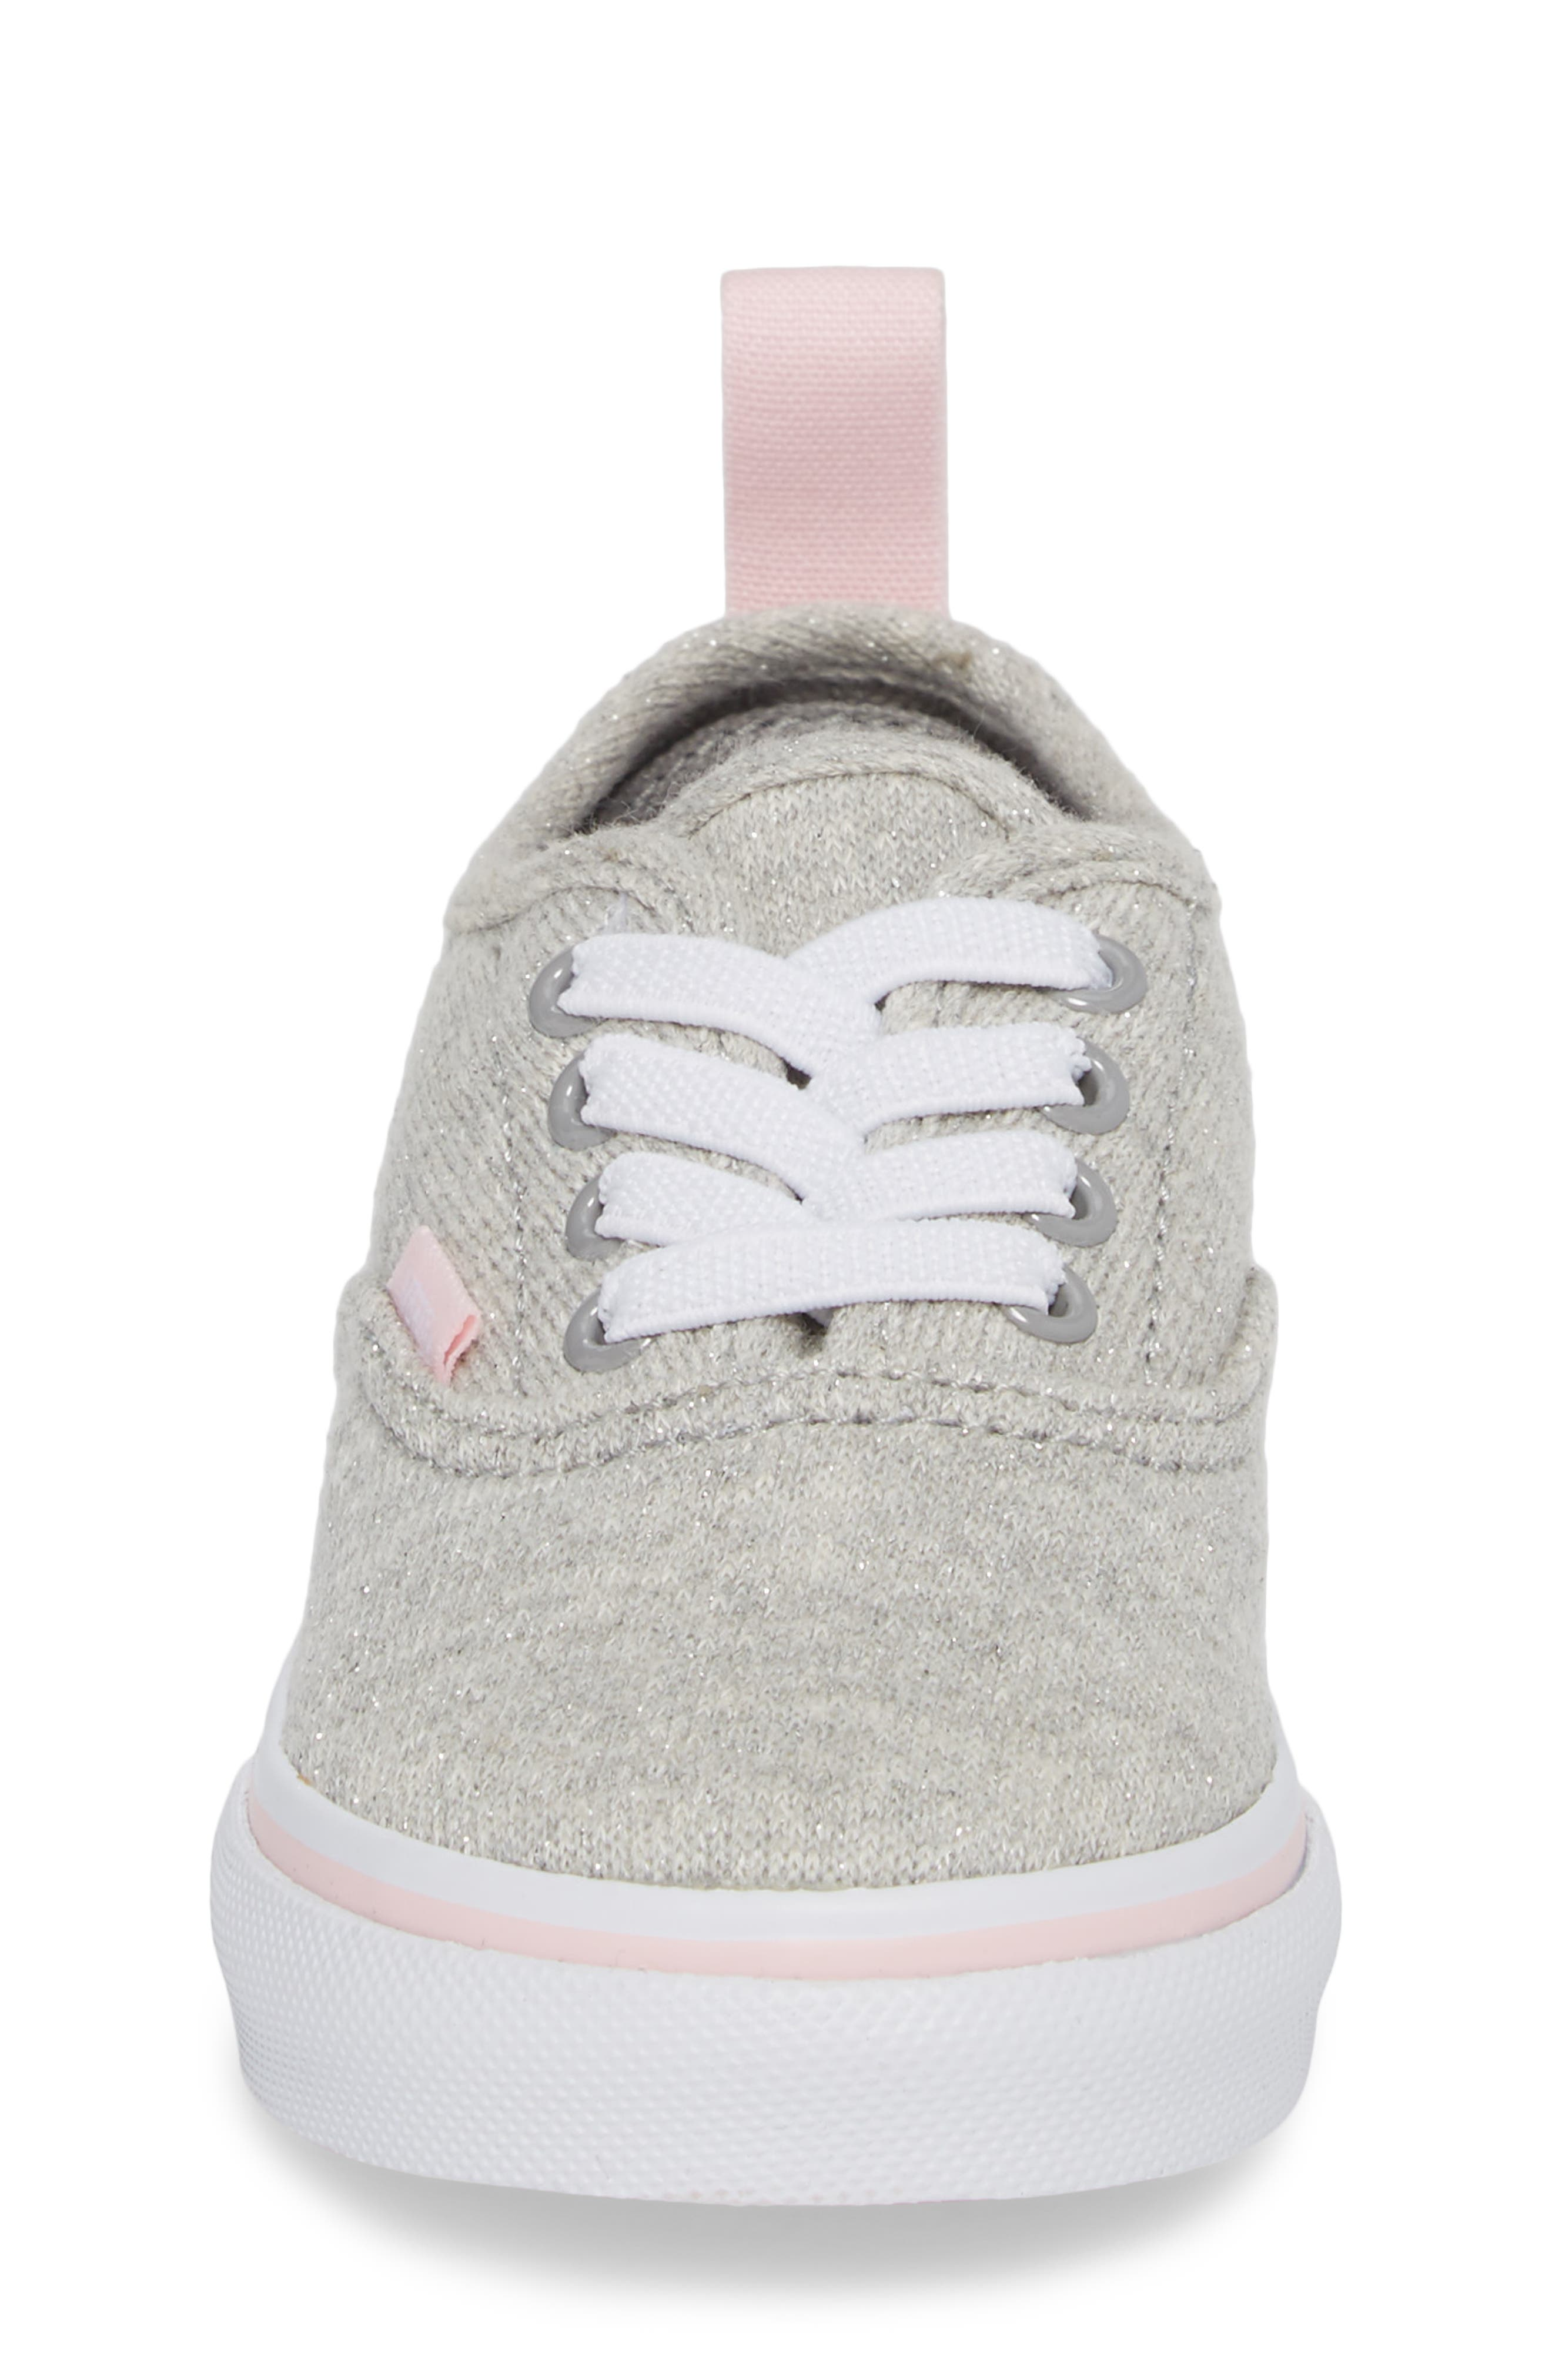 Authentic Glitter Sneaker,                             Alternate thumbnail 4, color,                             Gray/ Pink Shimmer Jersey